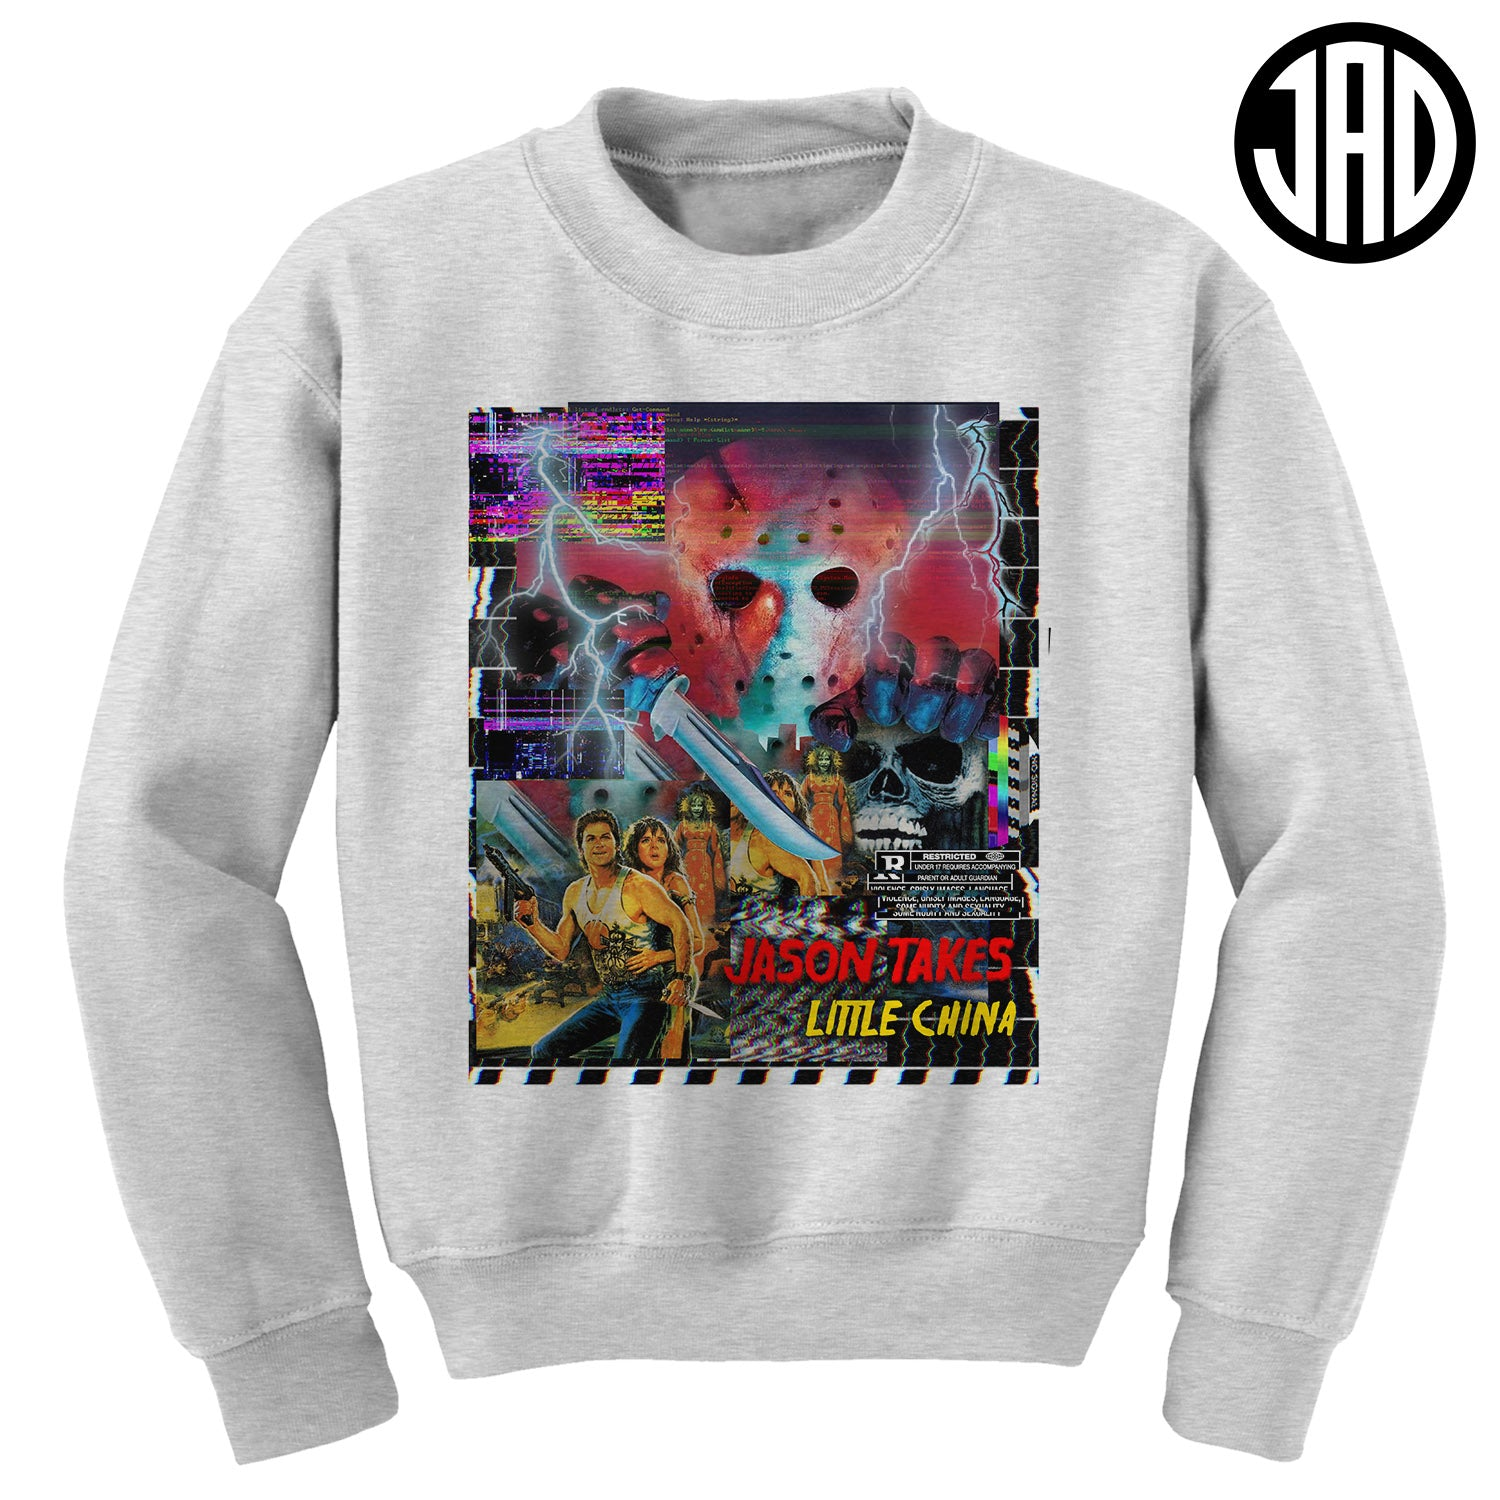 Jason Takes Little China - Crewneck Sweater